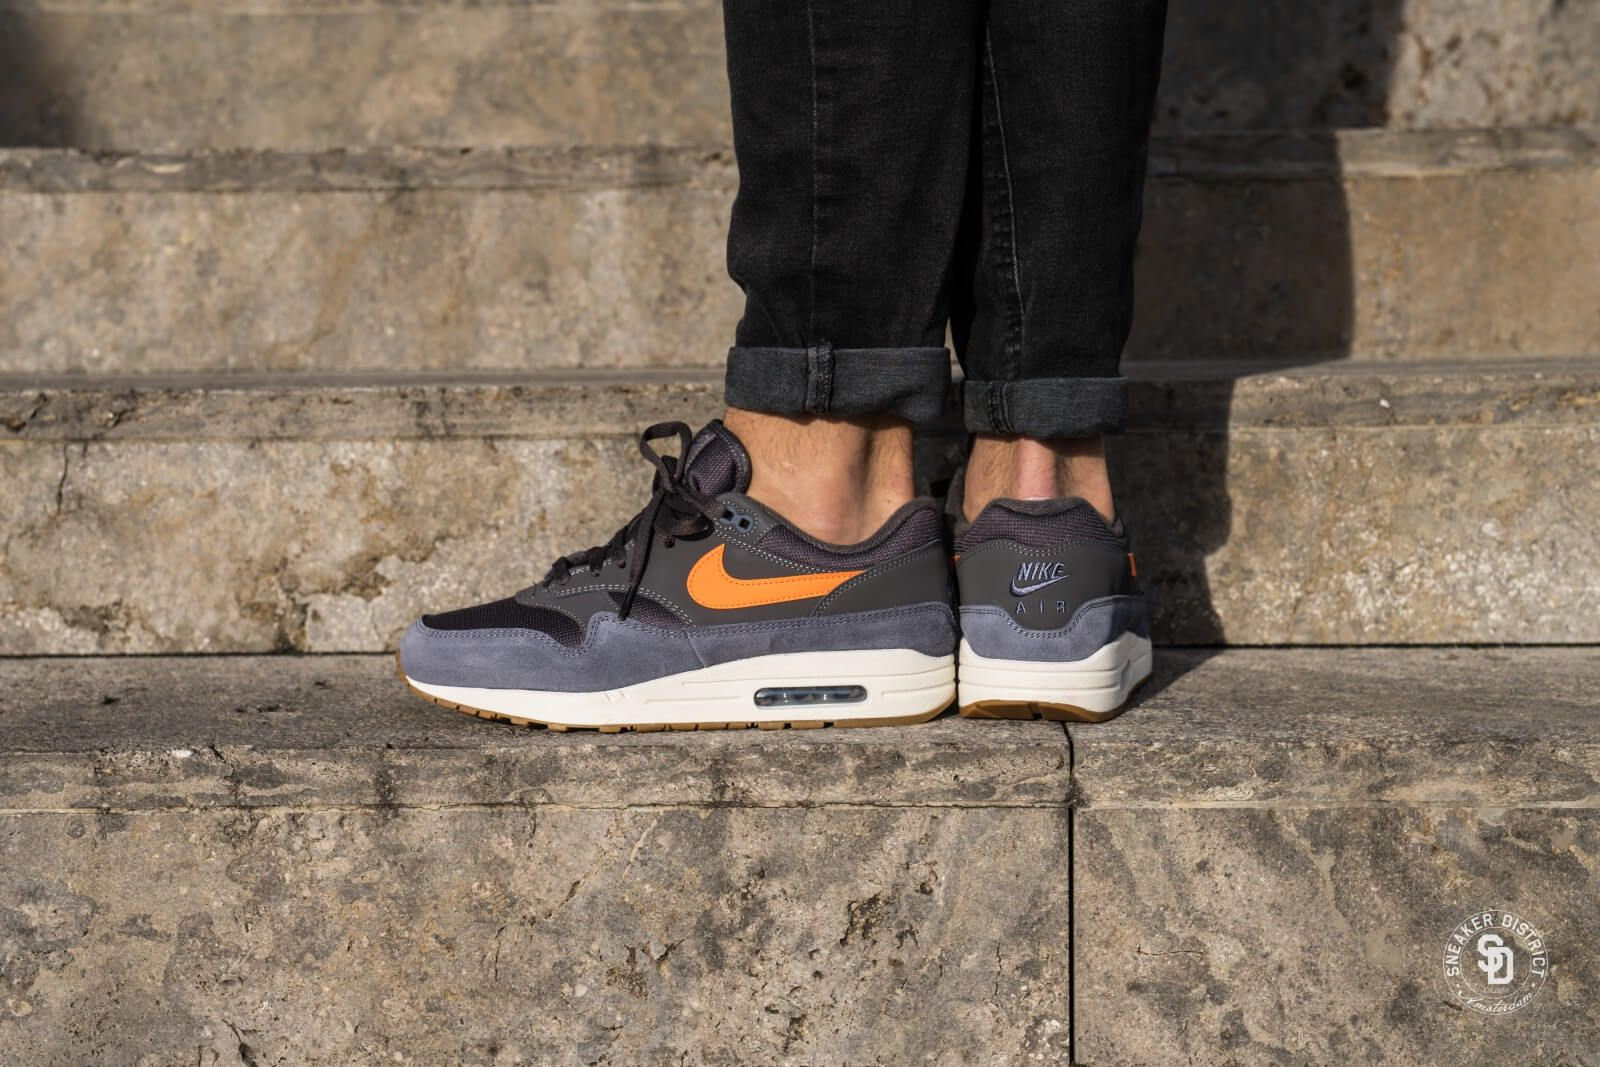 Nike Air Max 1 Thunder GreyTotal Orange Light Carbon